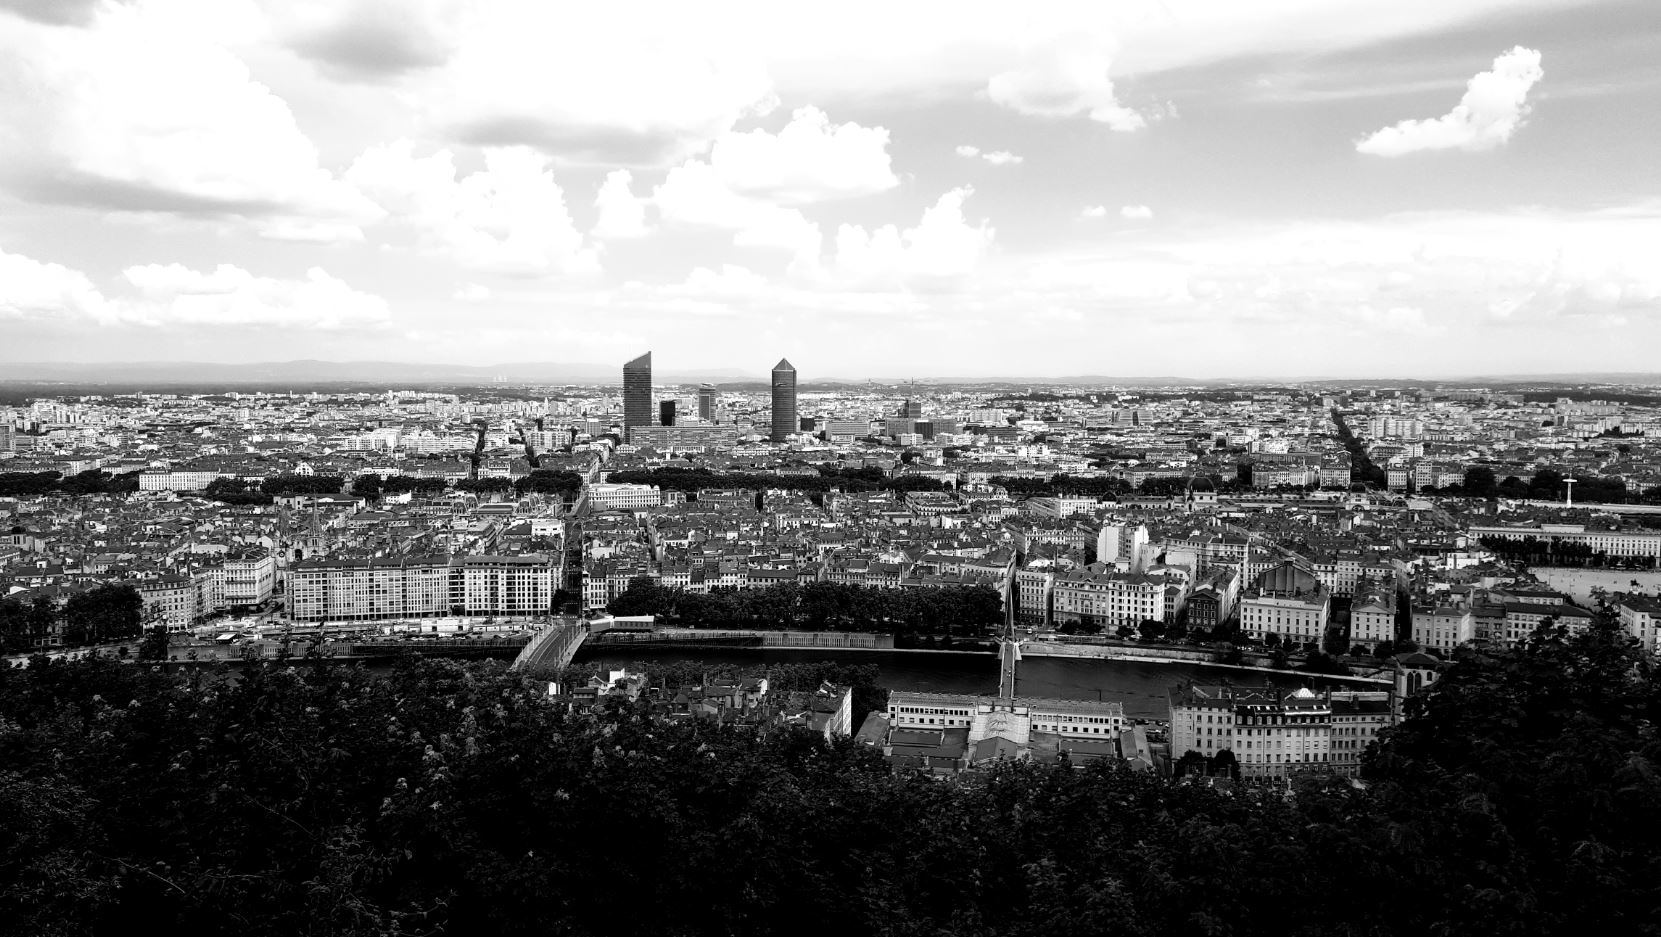 lyon fourviere